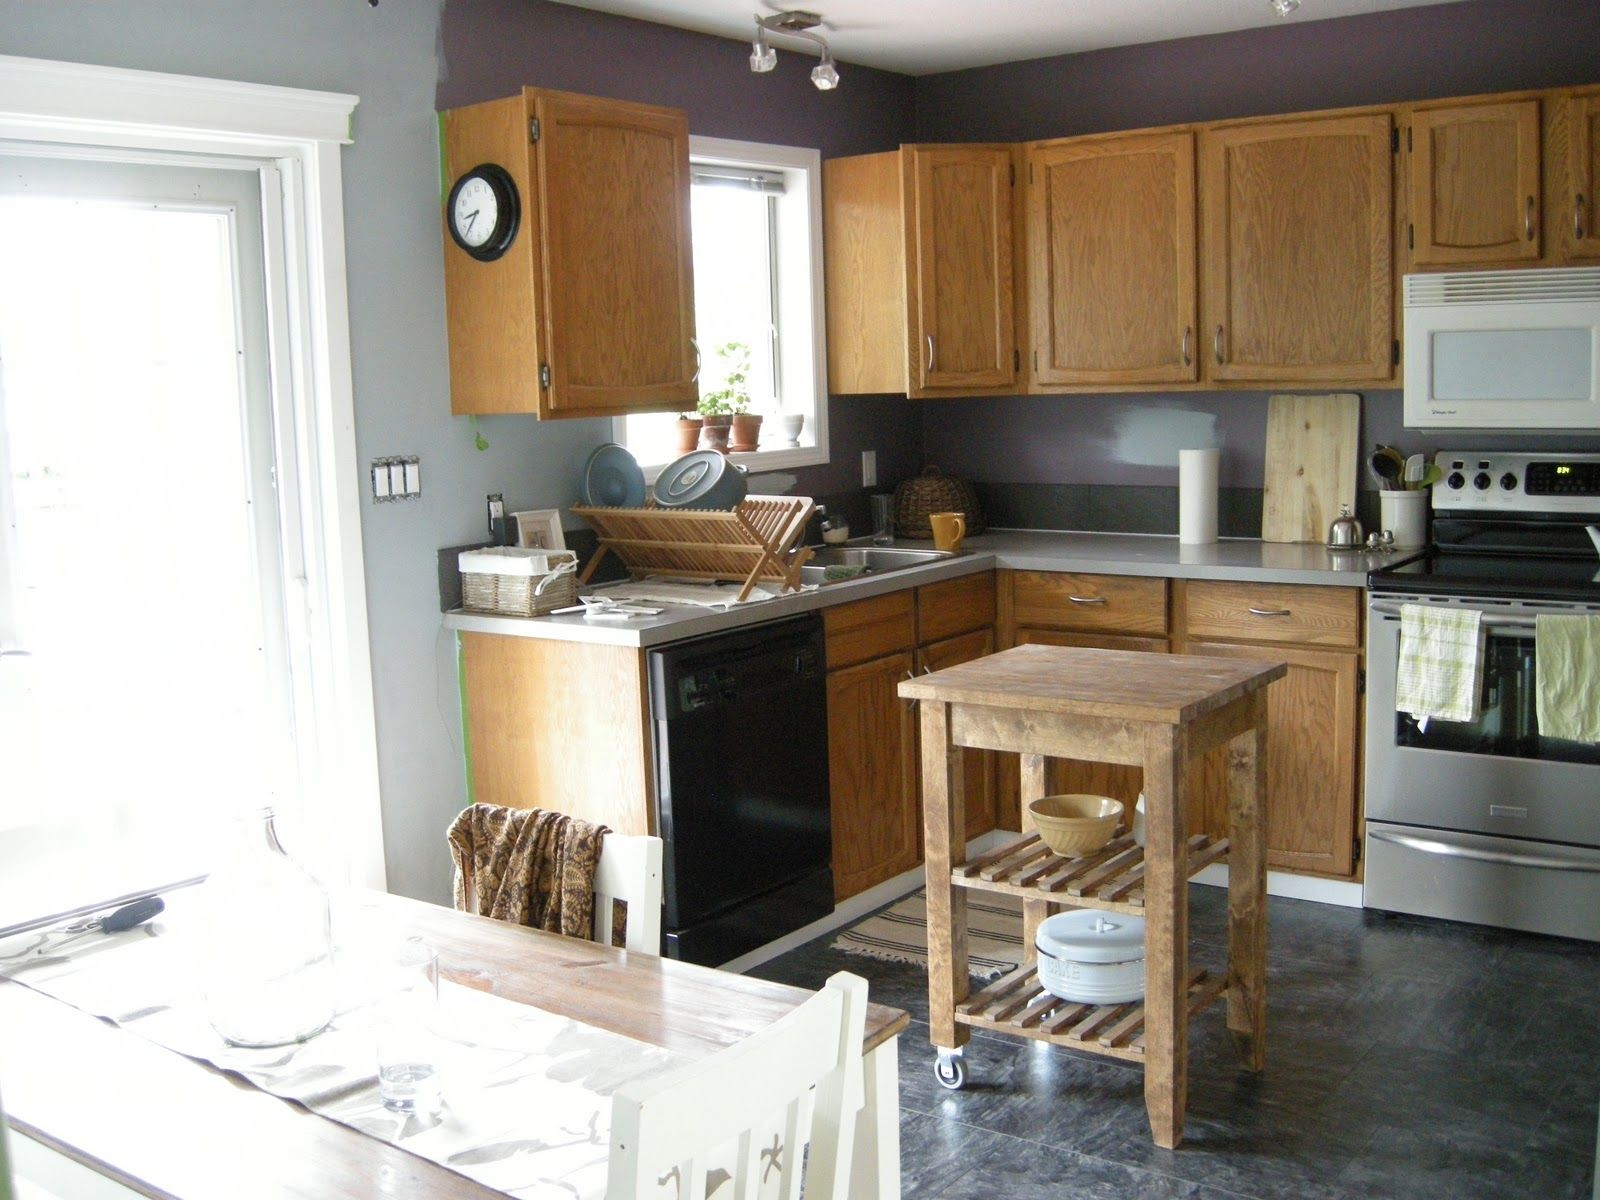 Paint For Kitchen Walls 17 Best Images About Kitchen Ideas On Pinterest Paint Colors